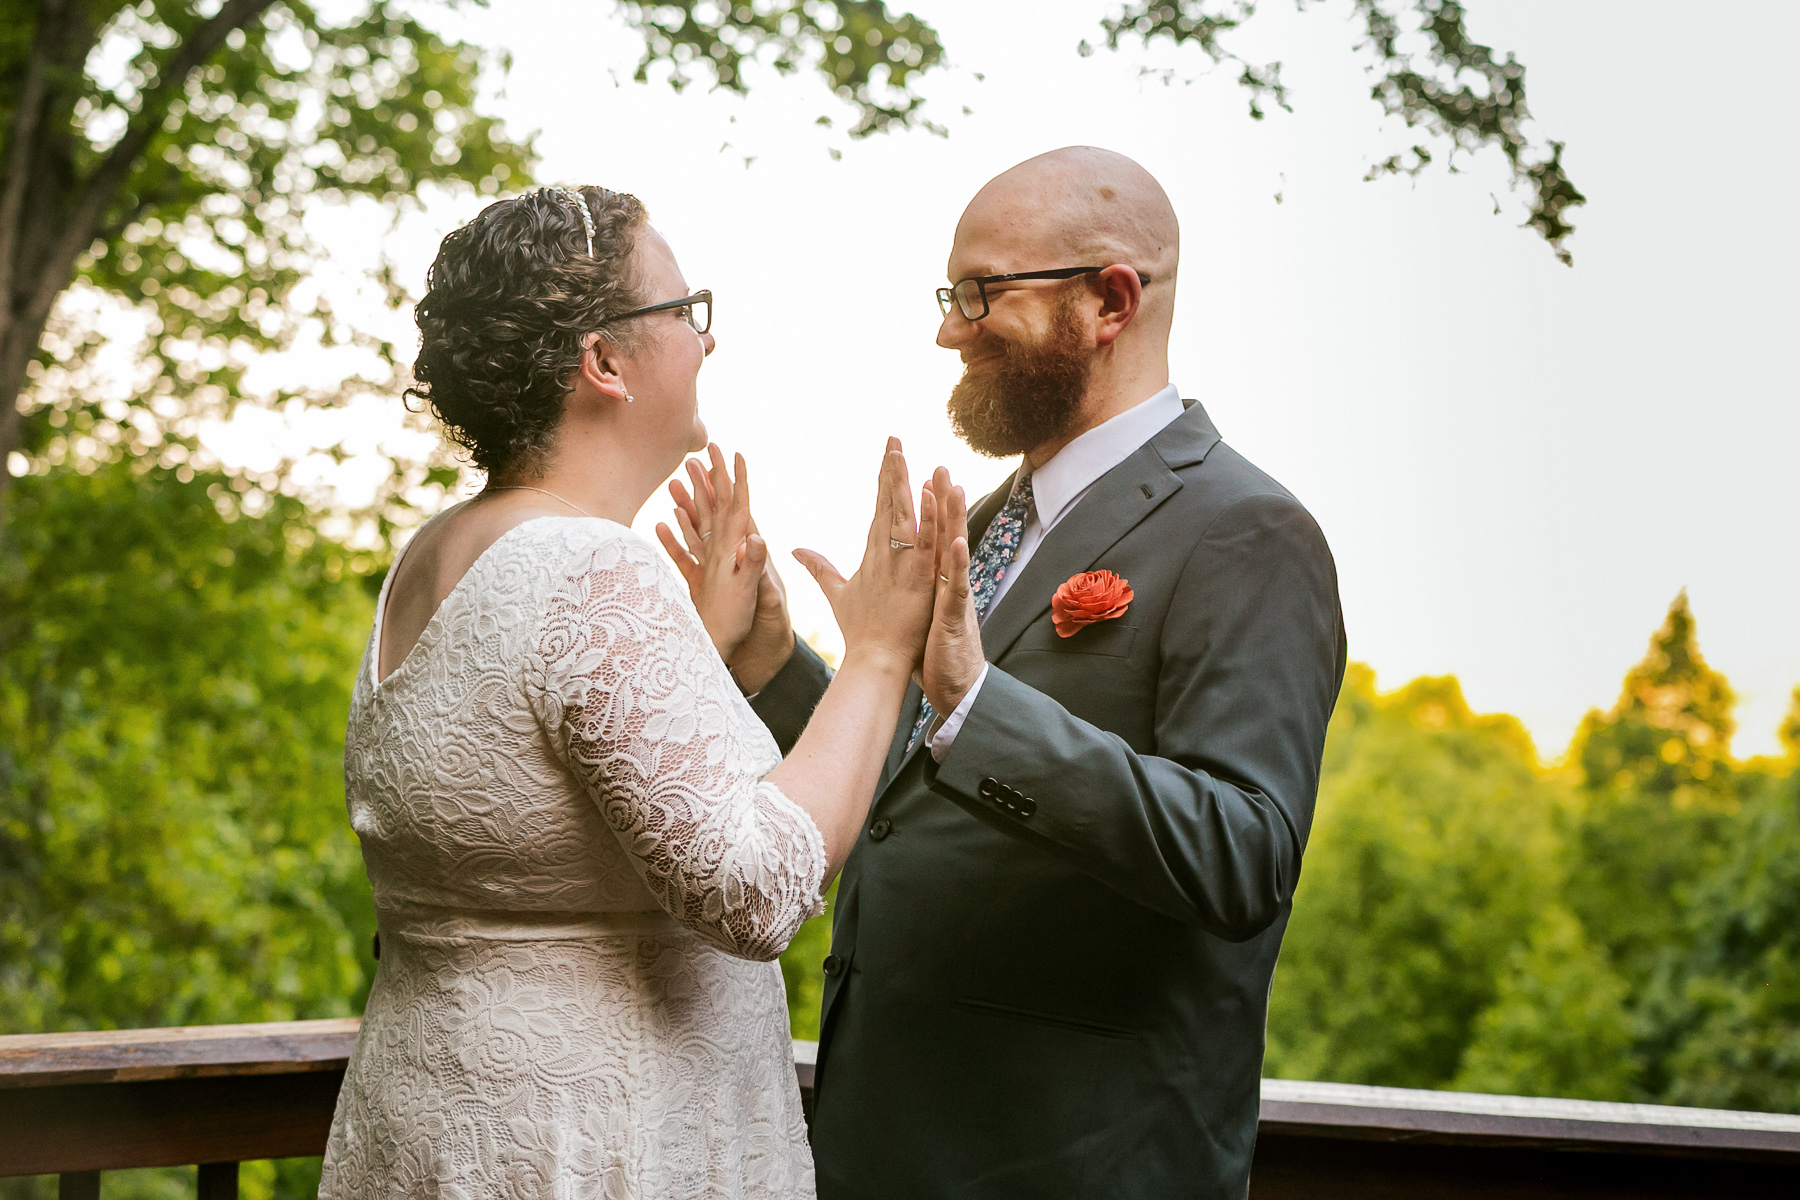 Northern Georgia Outdoor Wedding Picture | The newlywed couple celebrate together